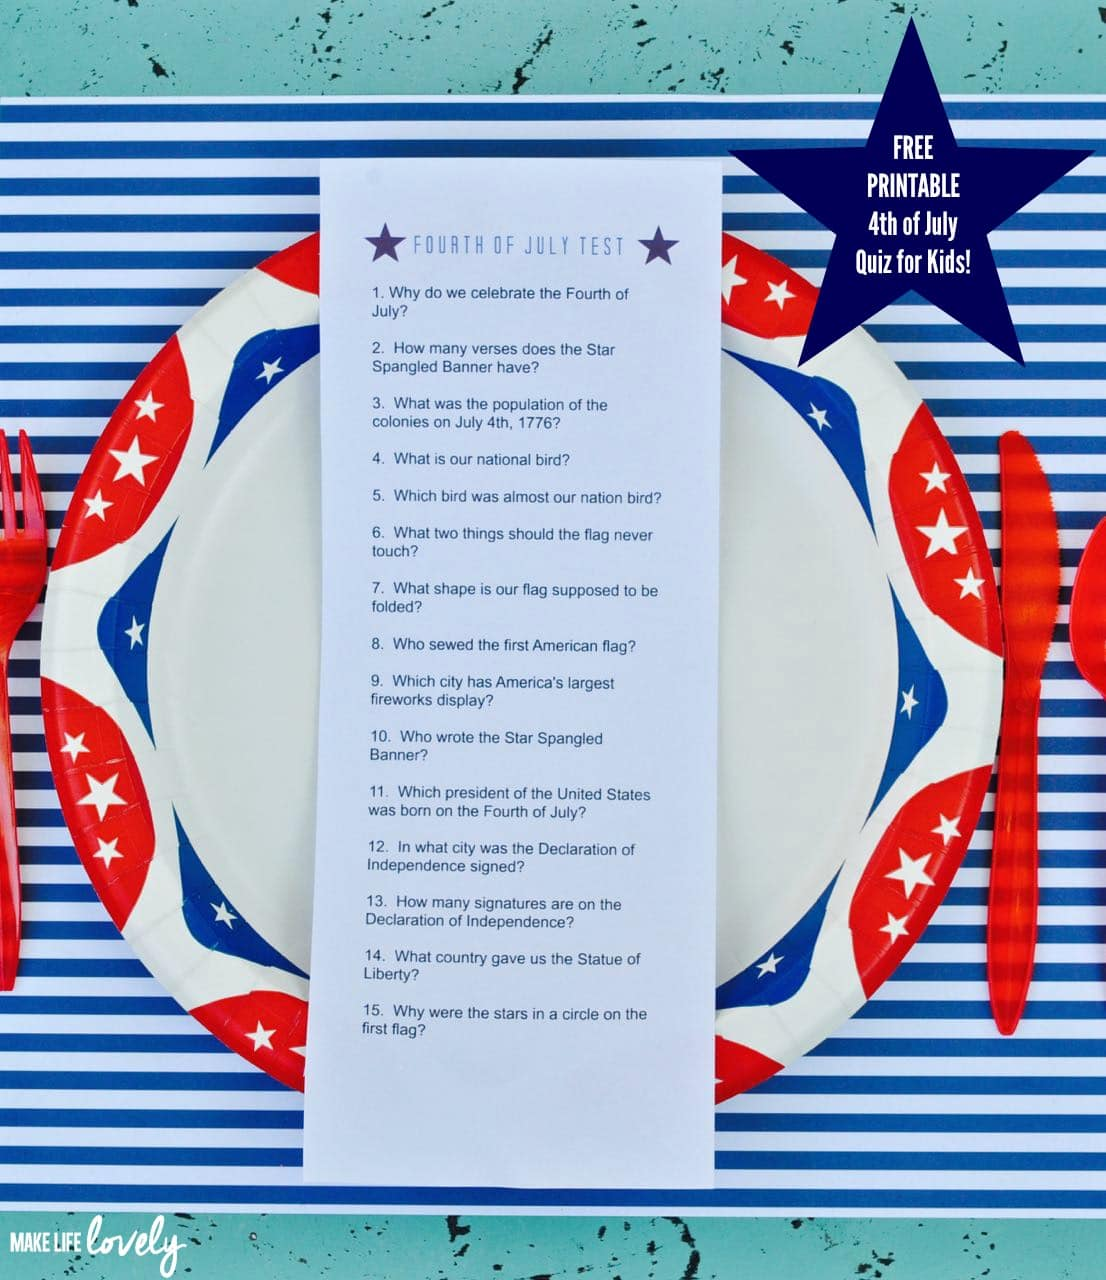 photo relating to Halloween Trivia Questions and Answers Free Printable known as Free of charge Printable Fourth of July Quiz for Children - Generate Everyday living Beautiful